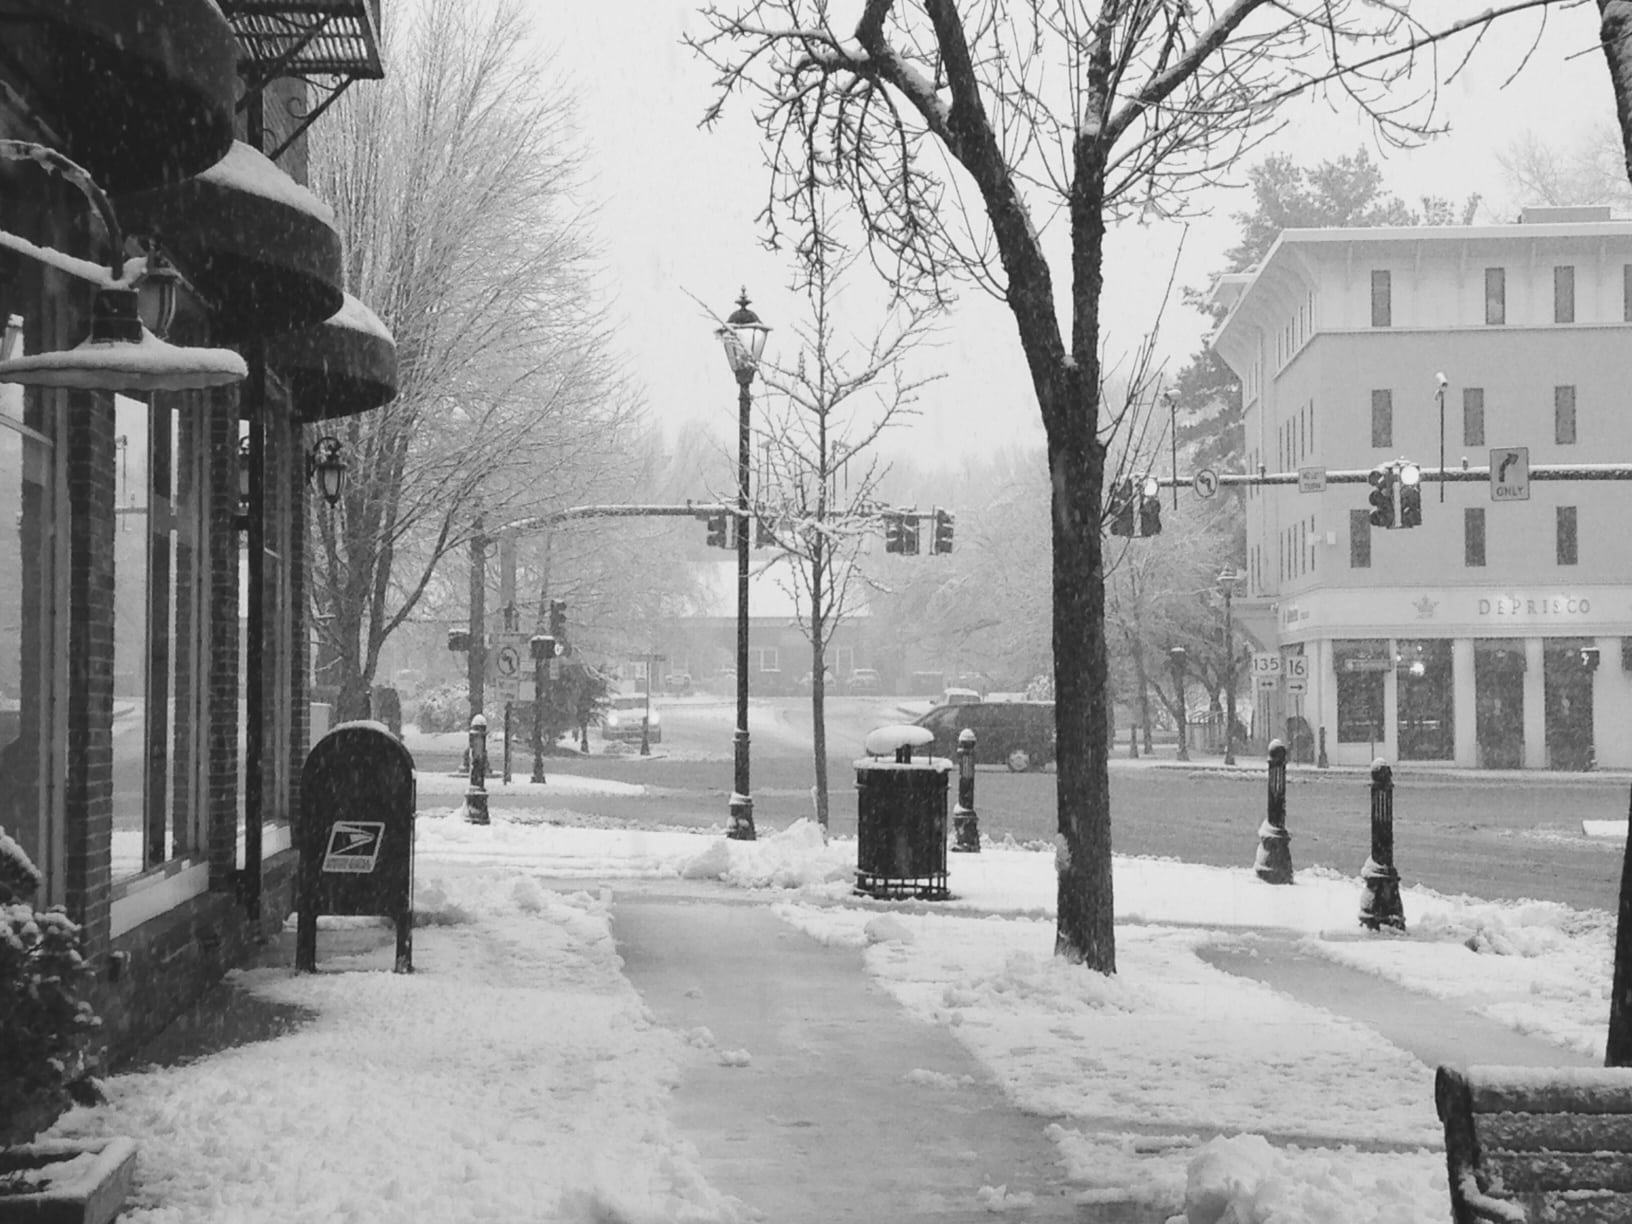 Snow day, Wellesley Square